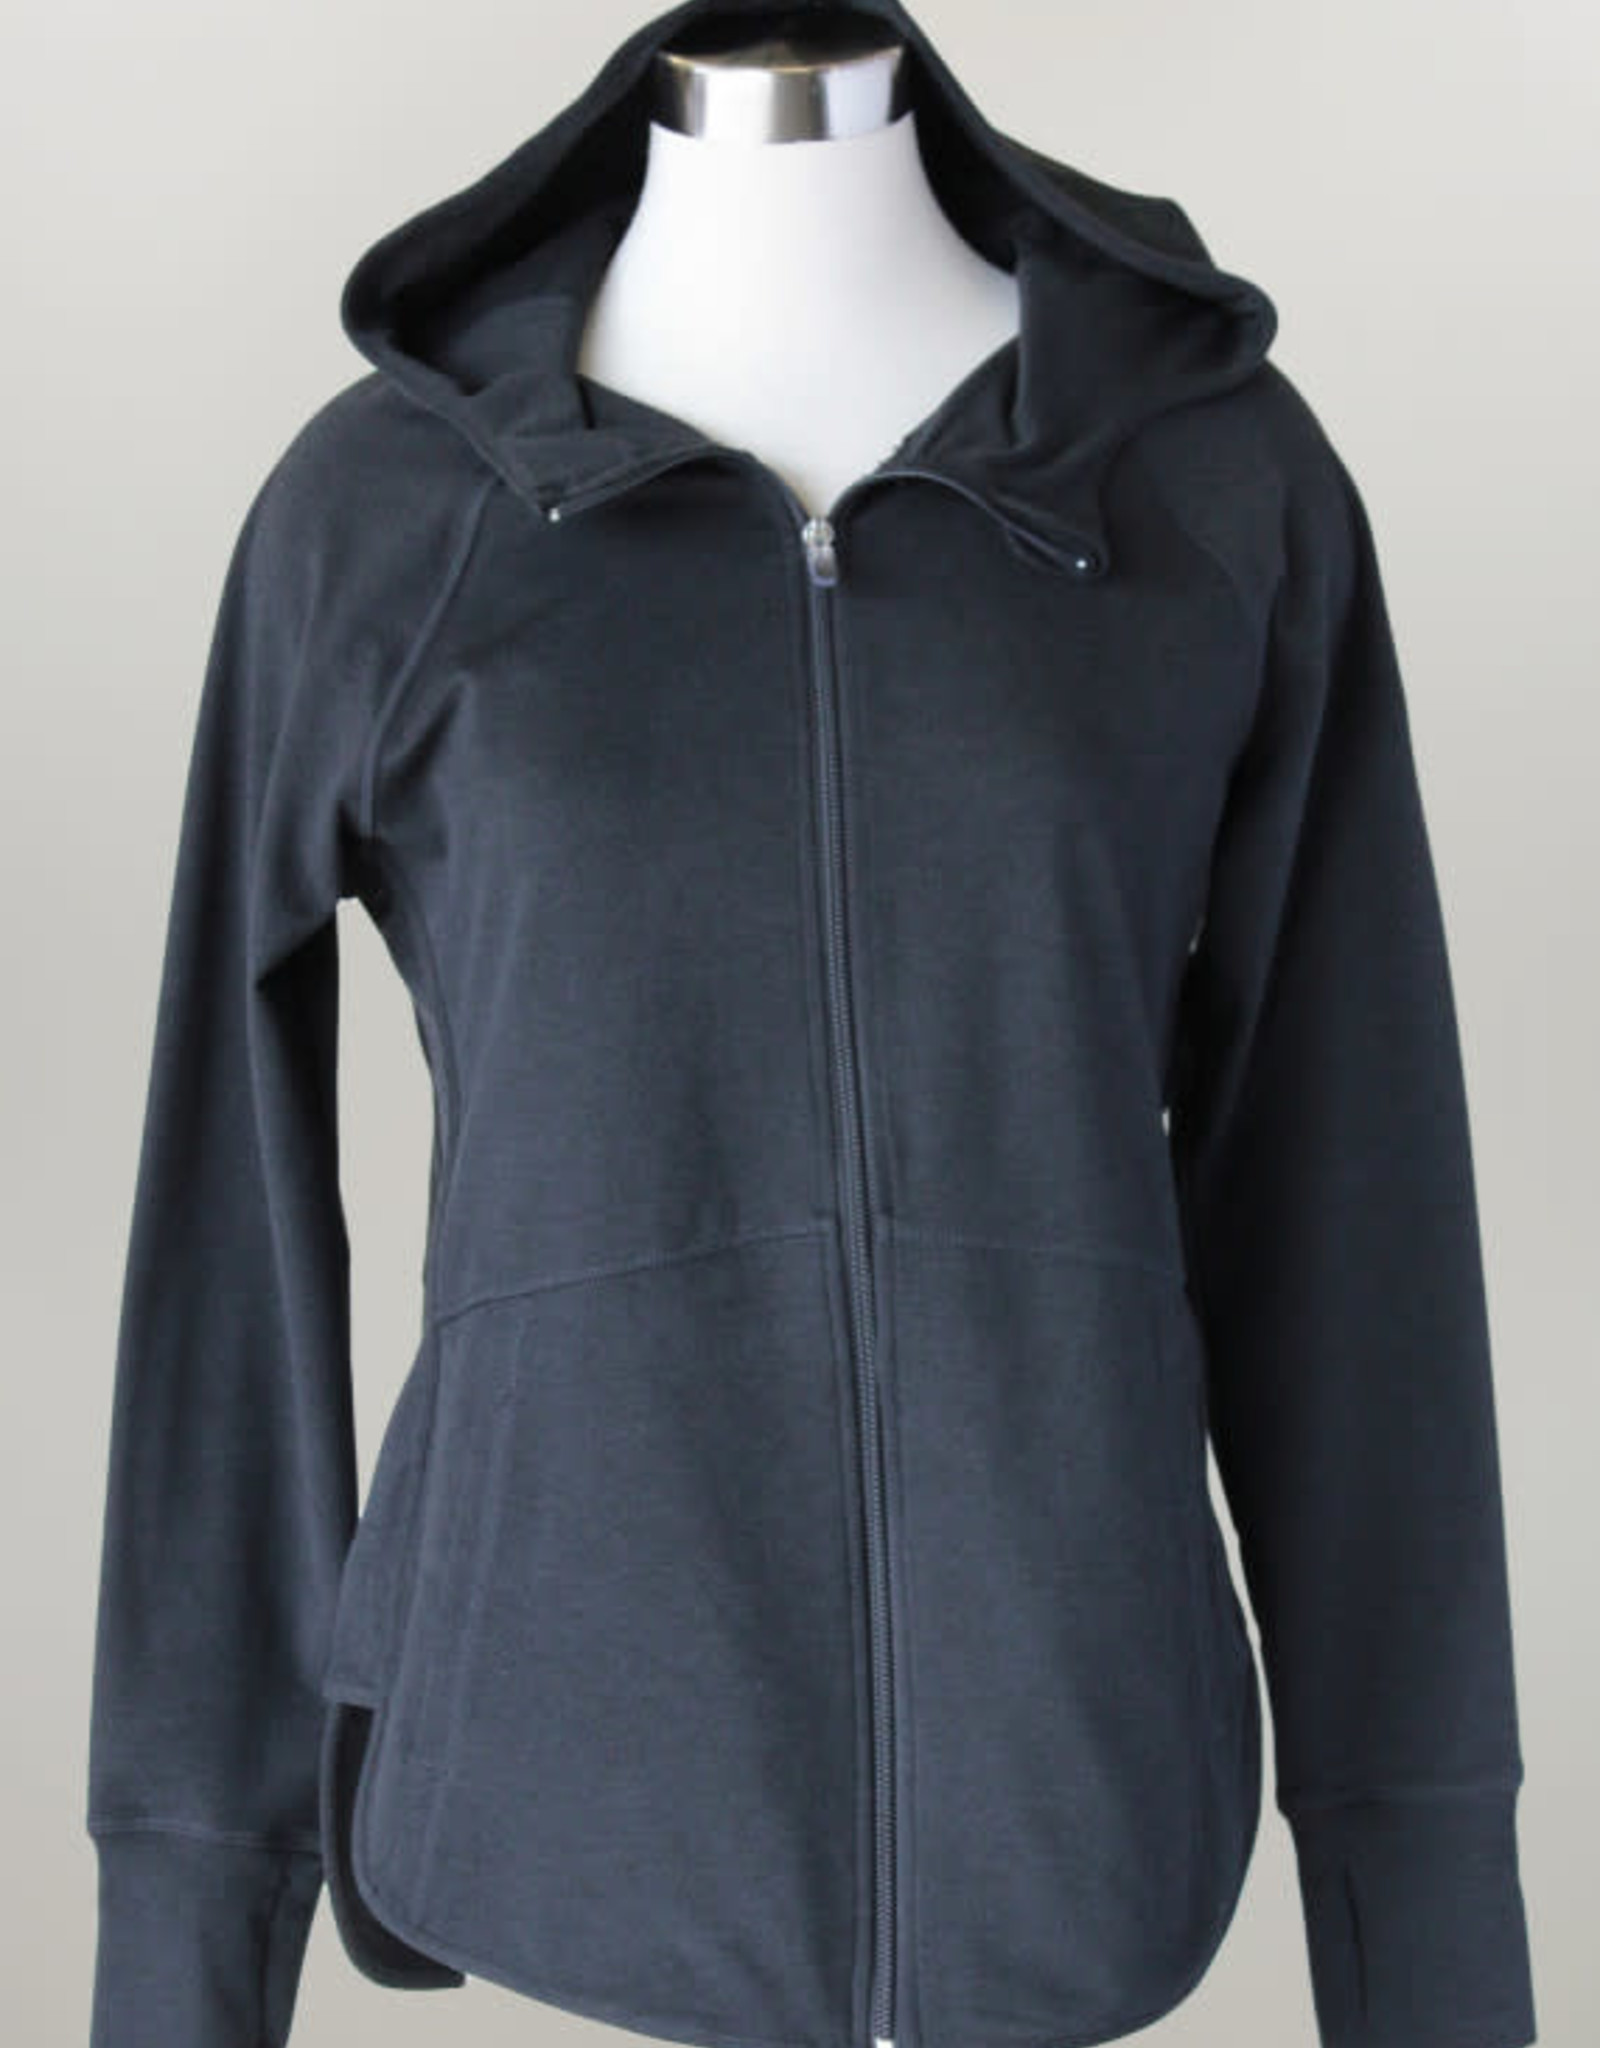 - Black Zip-Up Athletic Jacket